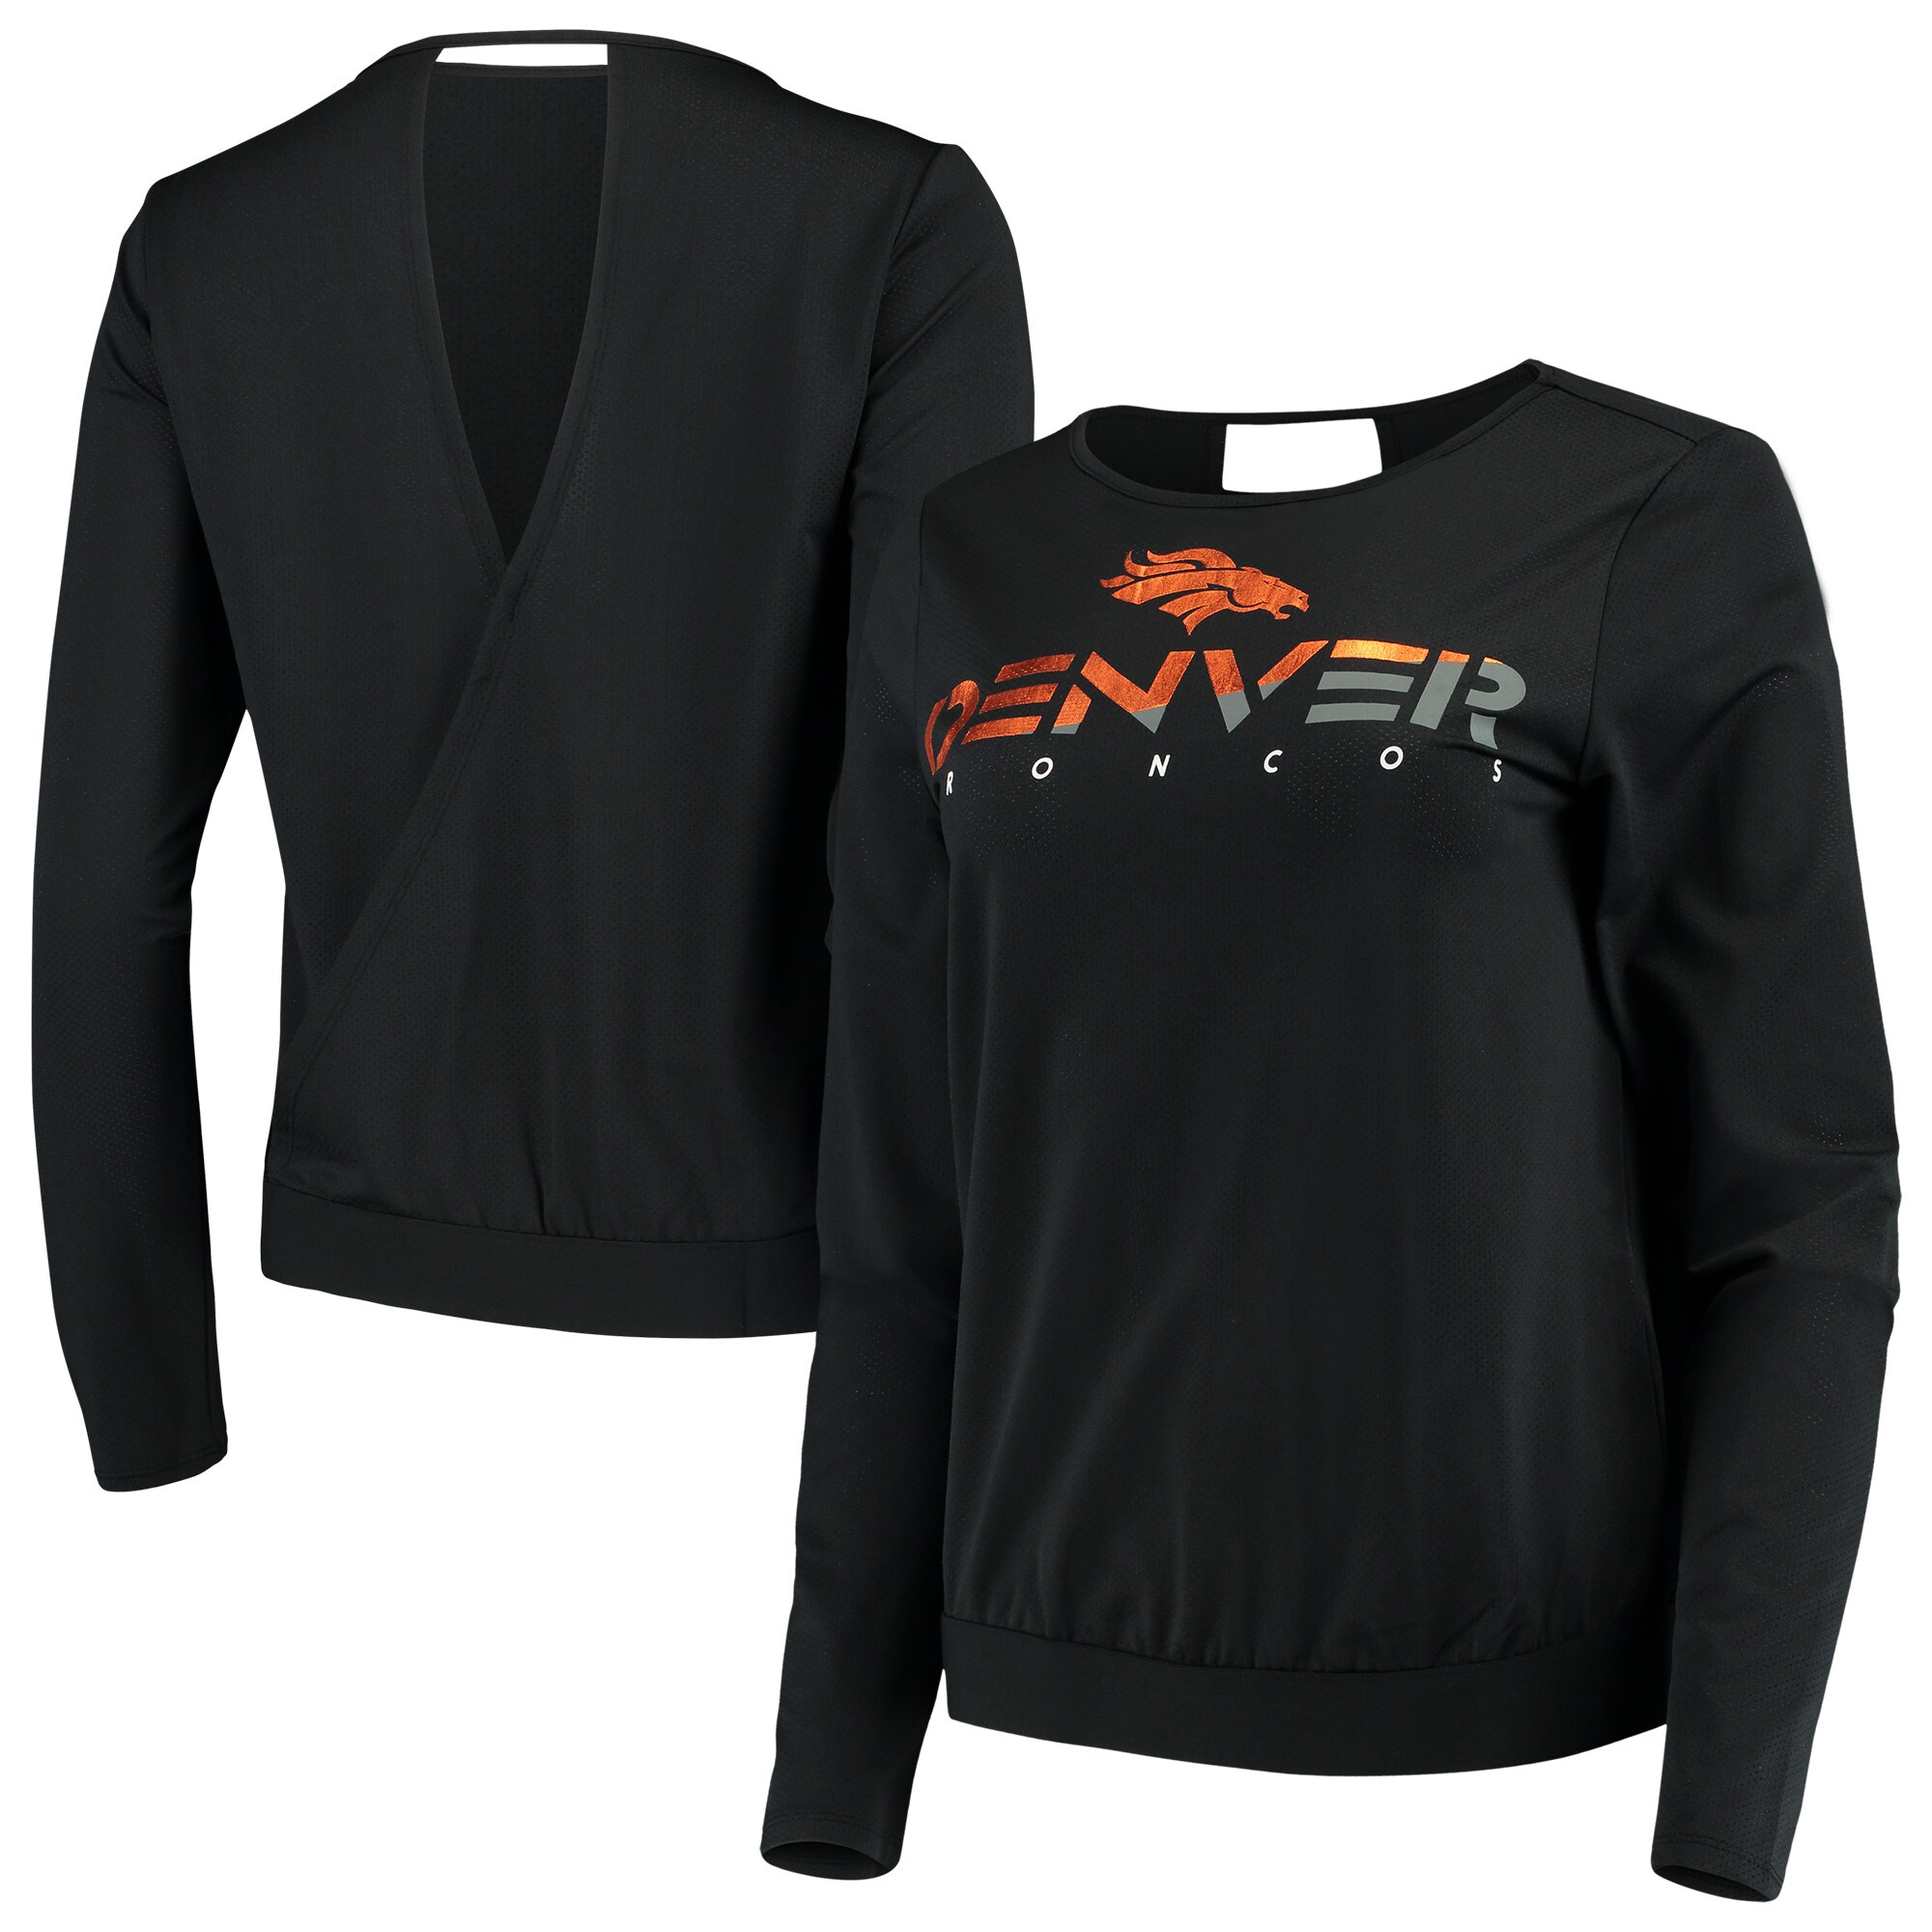 Denver Broncos Touch by Alyssa Milano Women's Breeze Back Long Sleeve V-Neck T-Shirt - Black